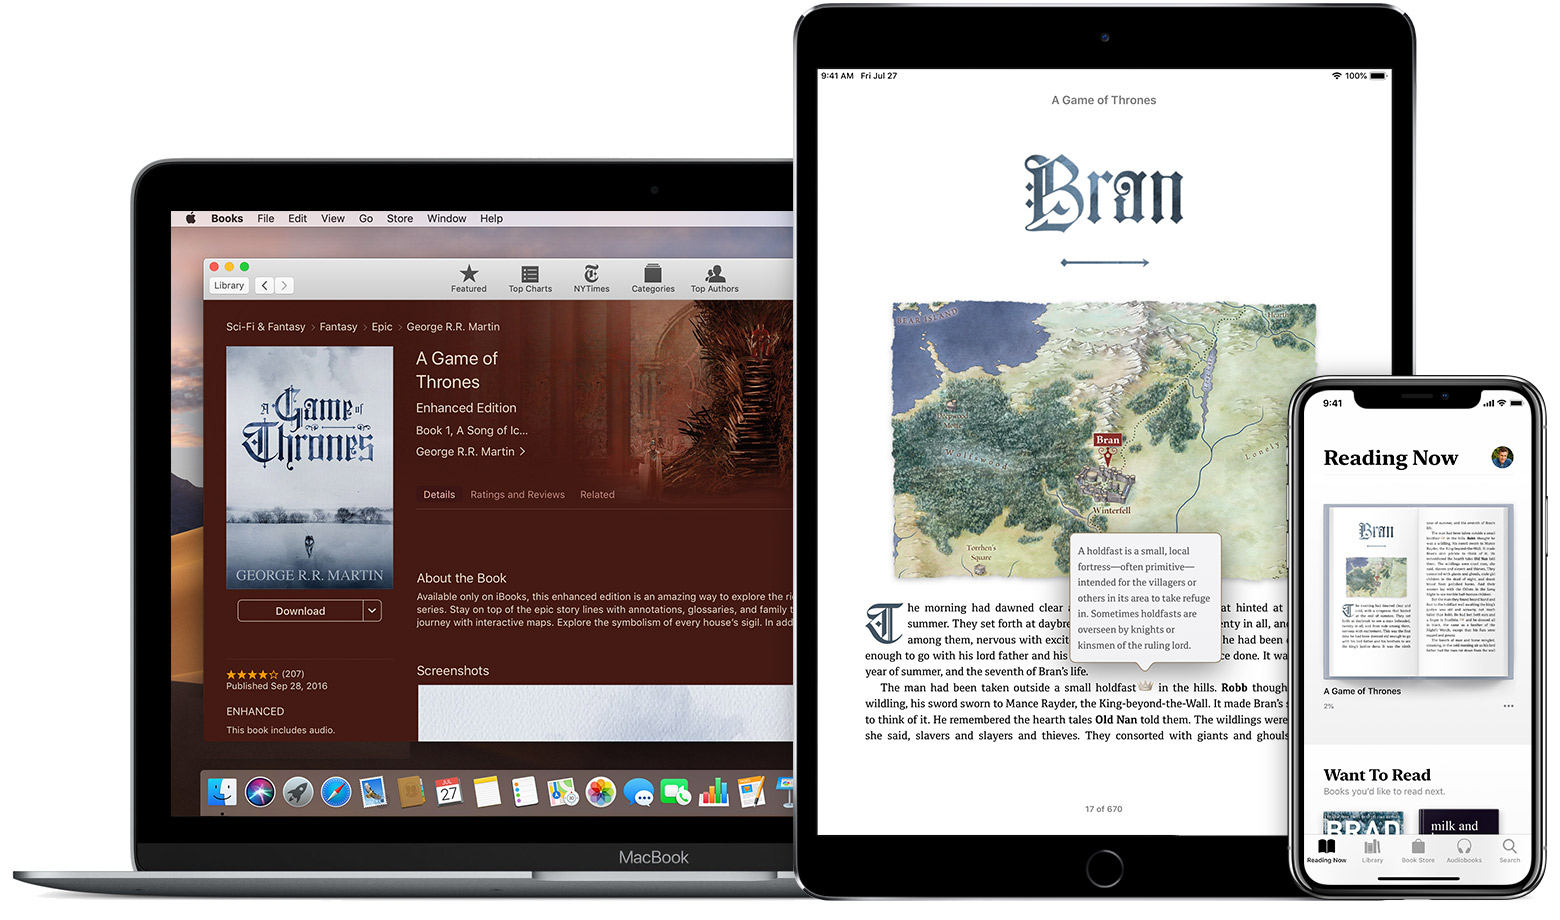 Copiar Libros De Ibooks A Pc How To Airdrop Ibooks From Iphone Macbook Astar Tutorial